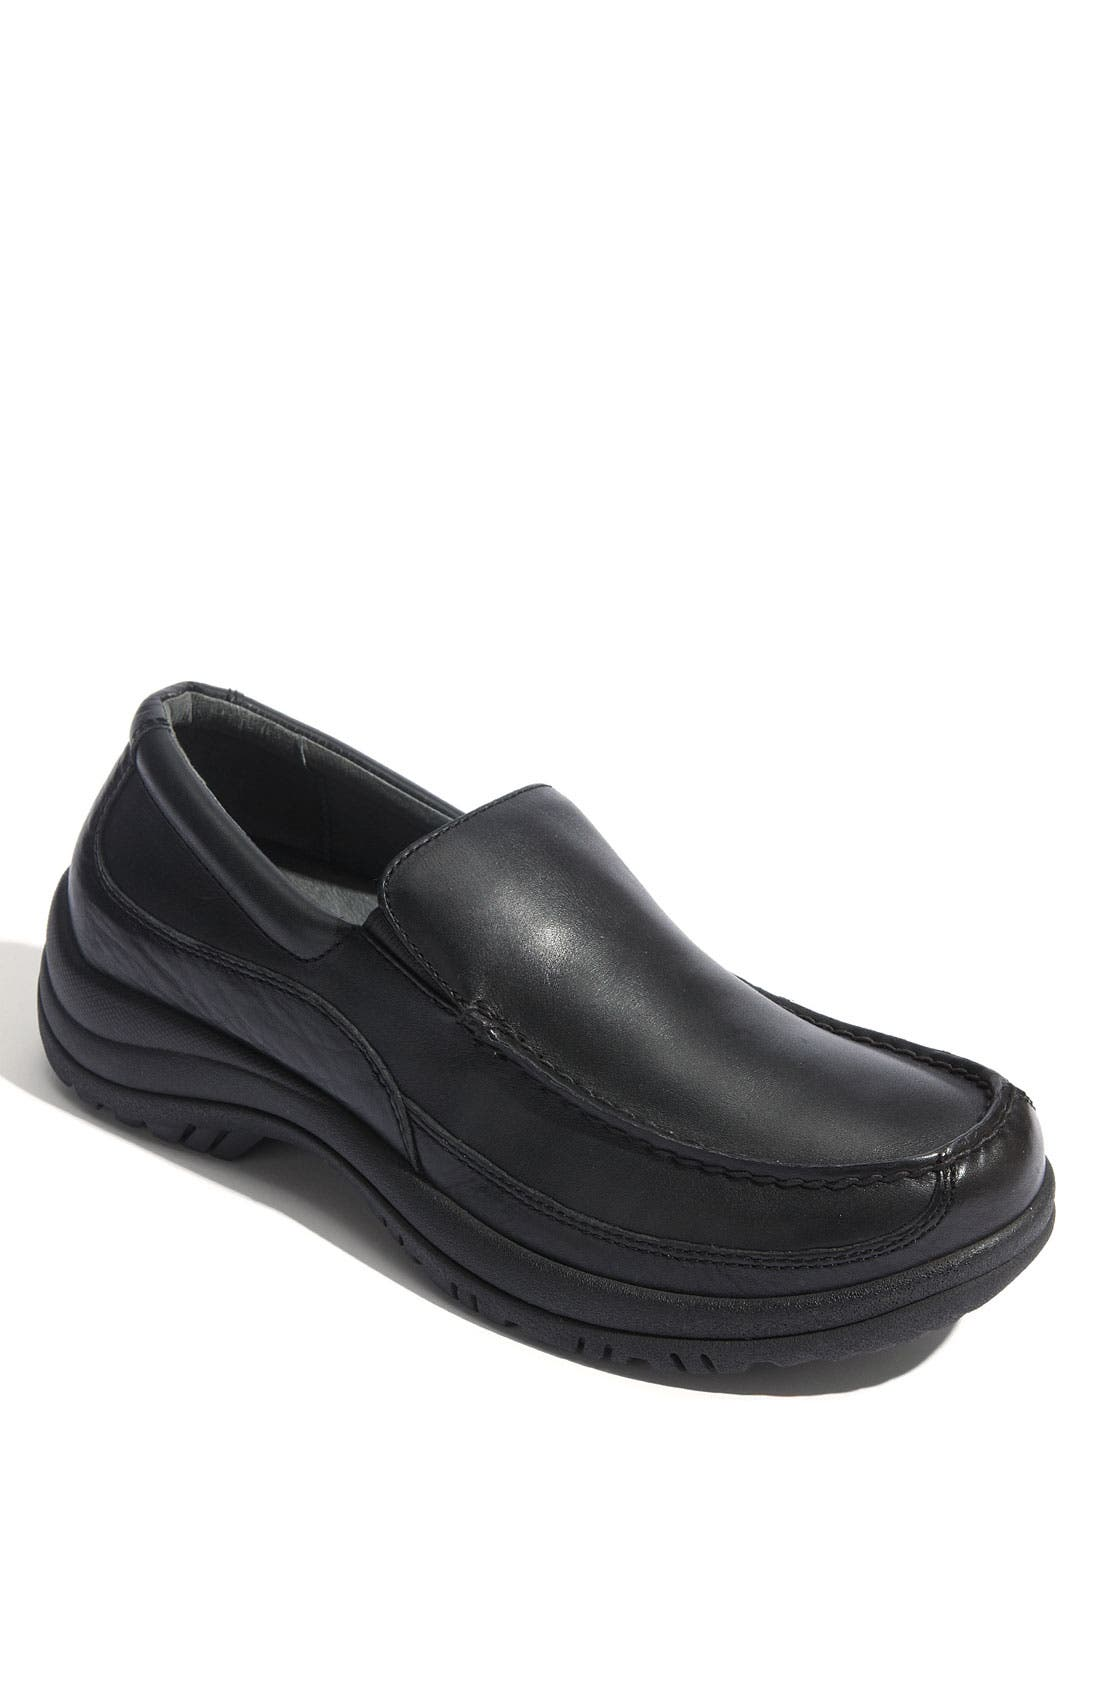 'Wayne' Slip-On,                             Main thumbnail 1, color,                             Black